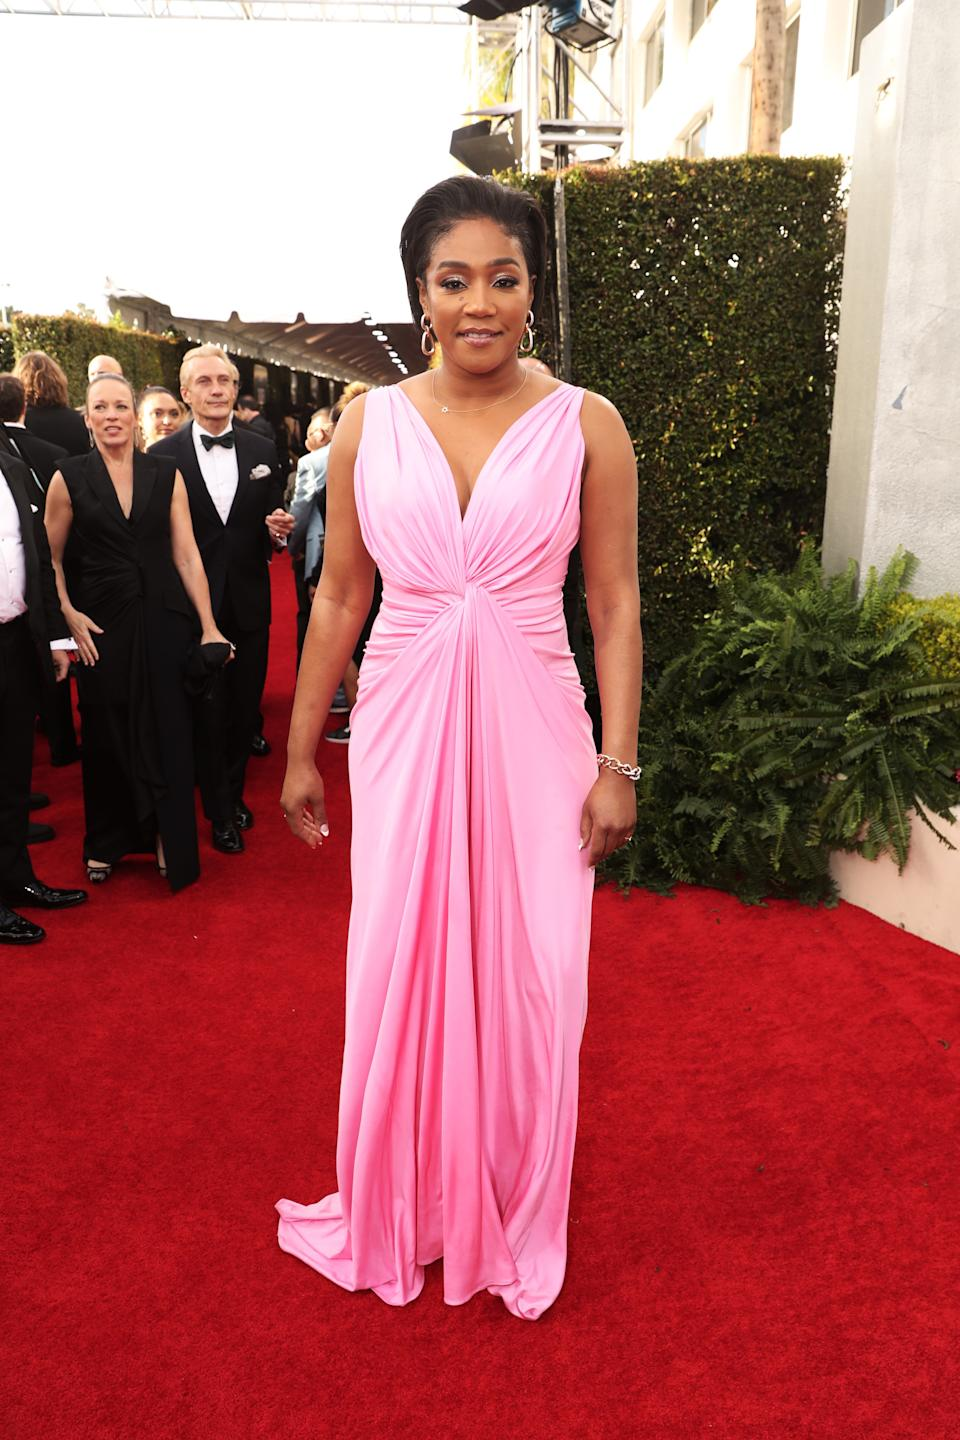 "<h1 class=""title"">Tiffany Haddish in Galia Lahav and Jimmy Choo shoes</h1><cite class=""credit"">Photo: Getty Images</cite>"